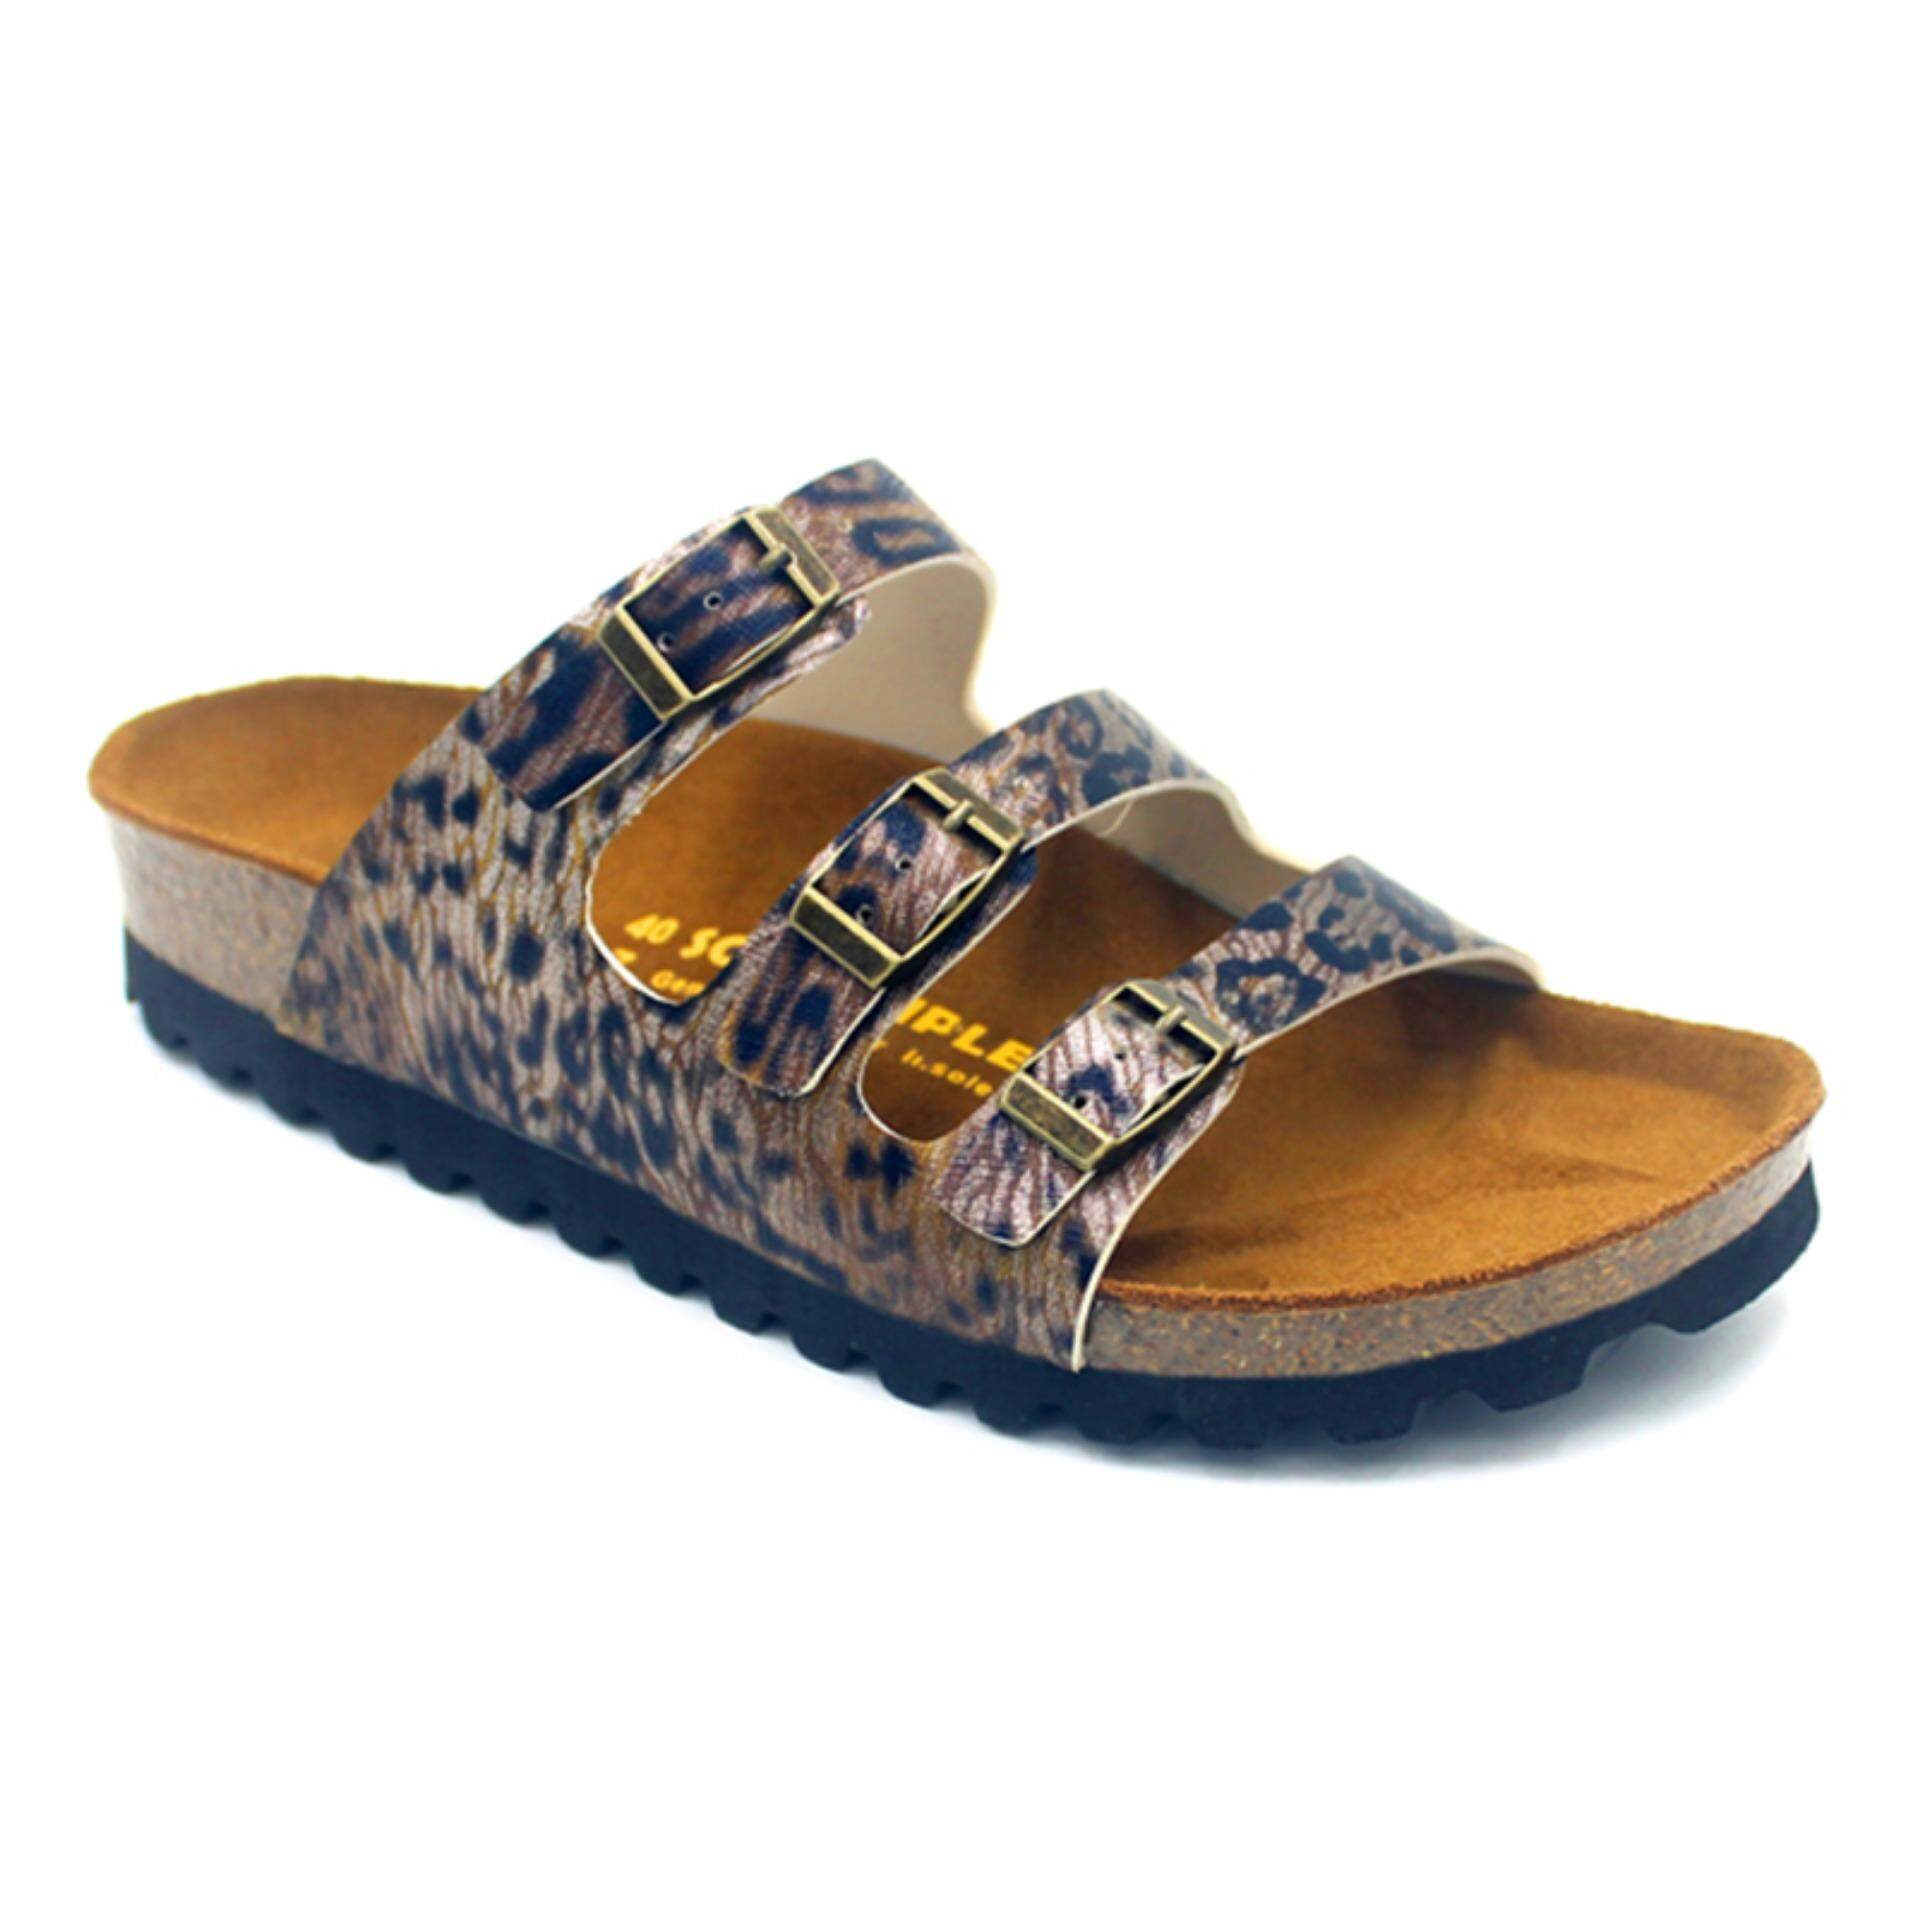 SoleSimple Ely - Leopard Bronze / Casual Soft Footbed Flat Slippers & Comfortable Shoes & Sandal Shoe